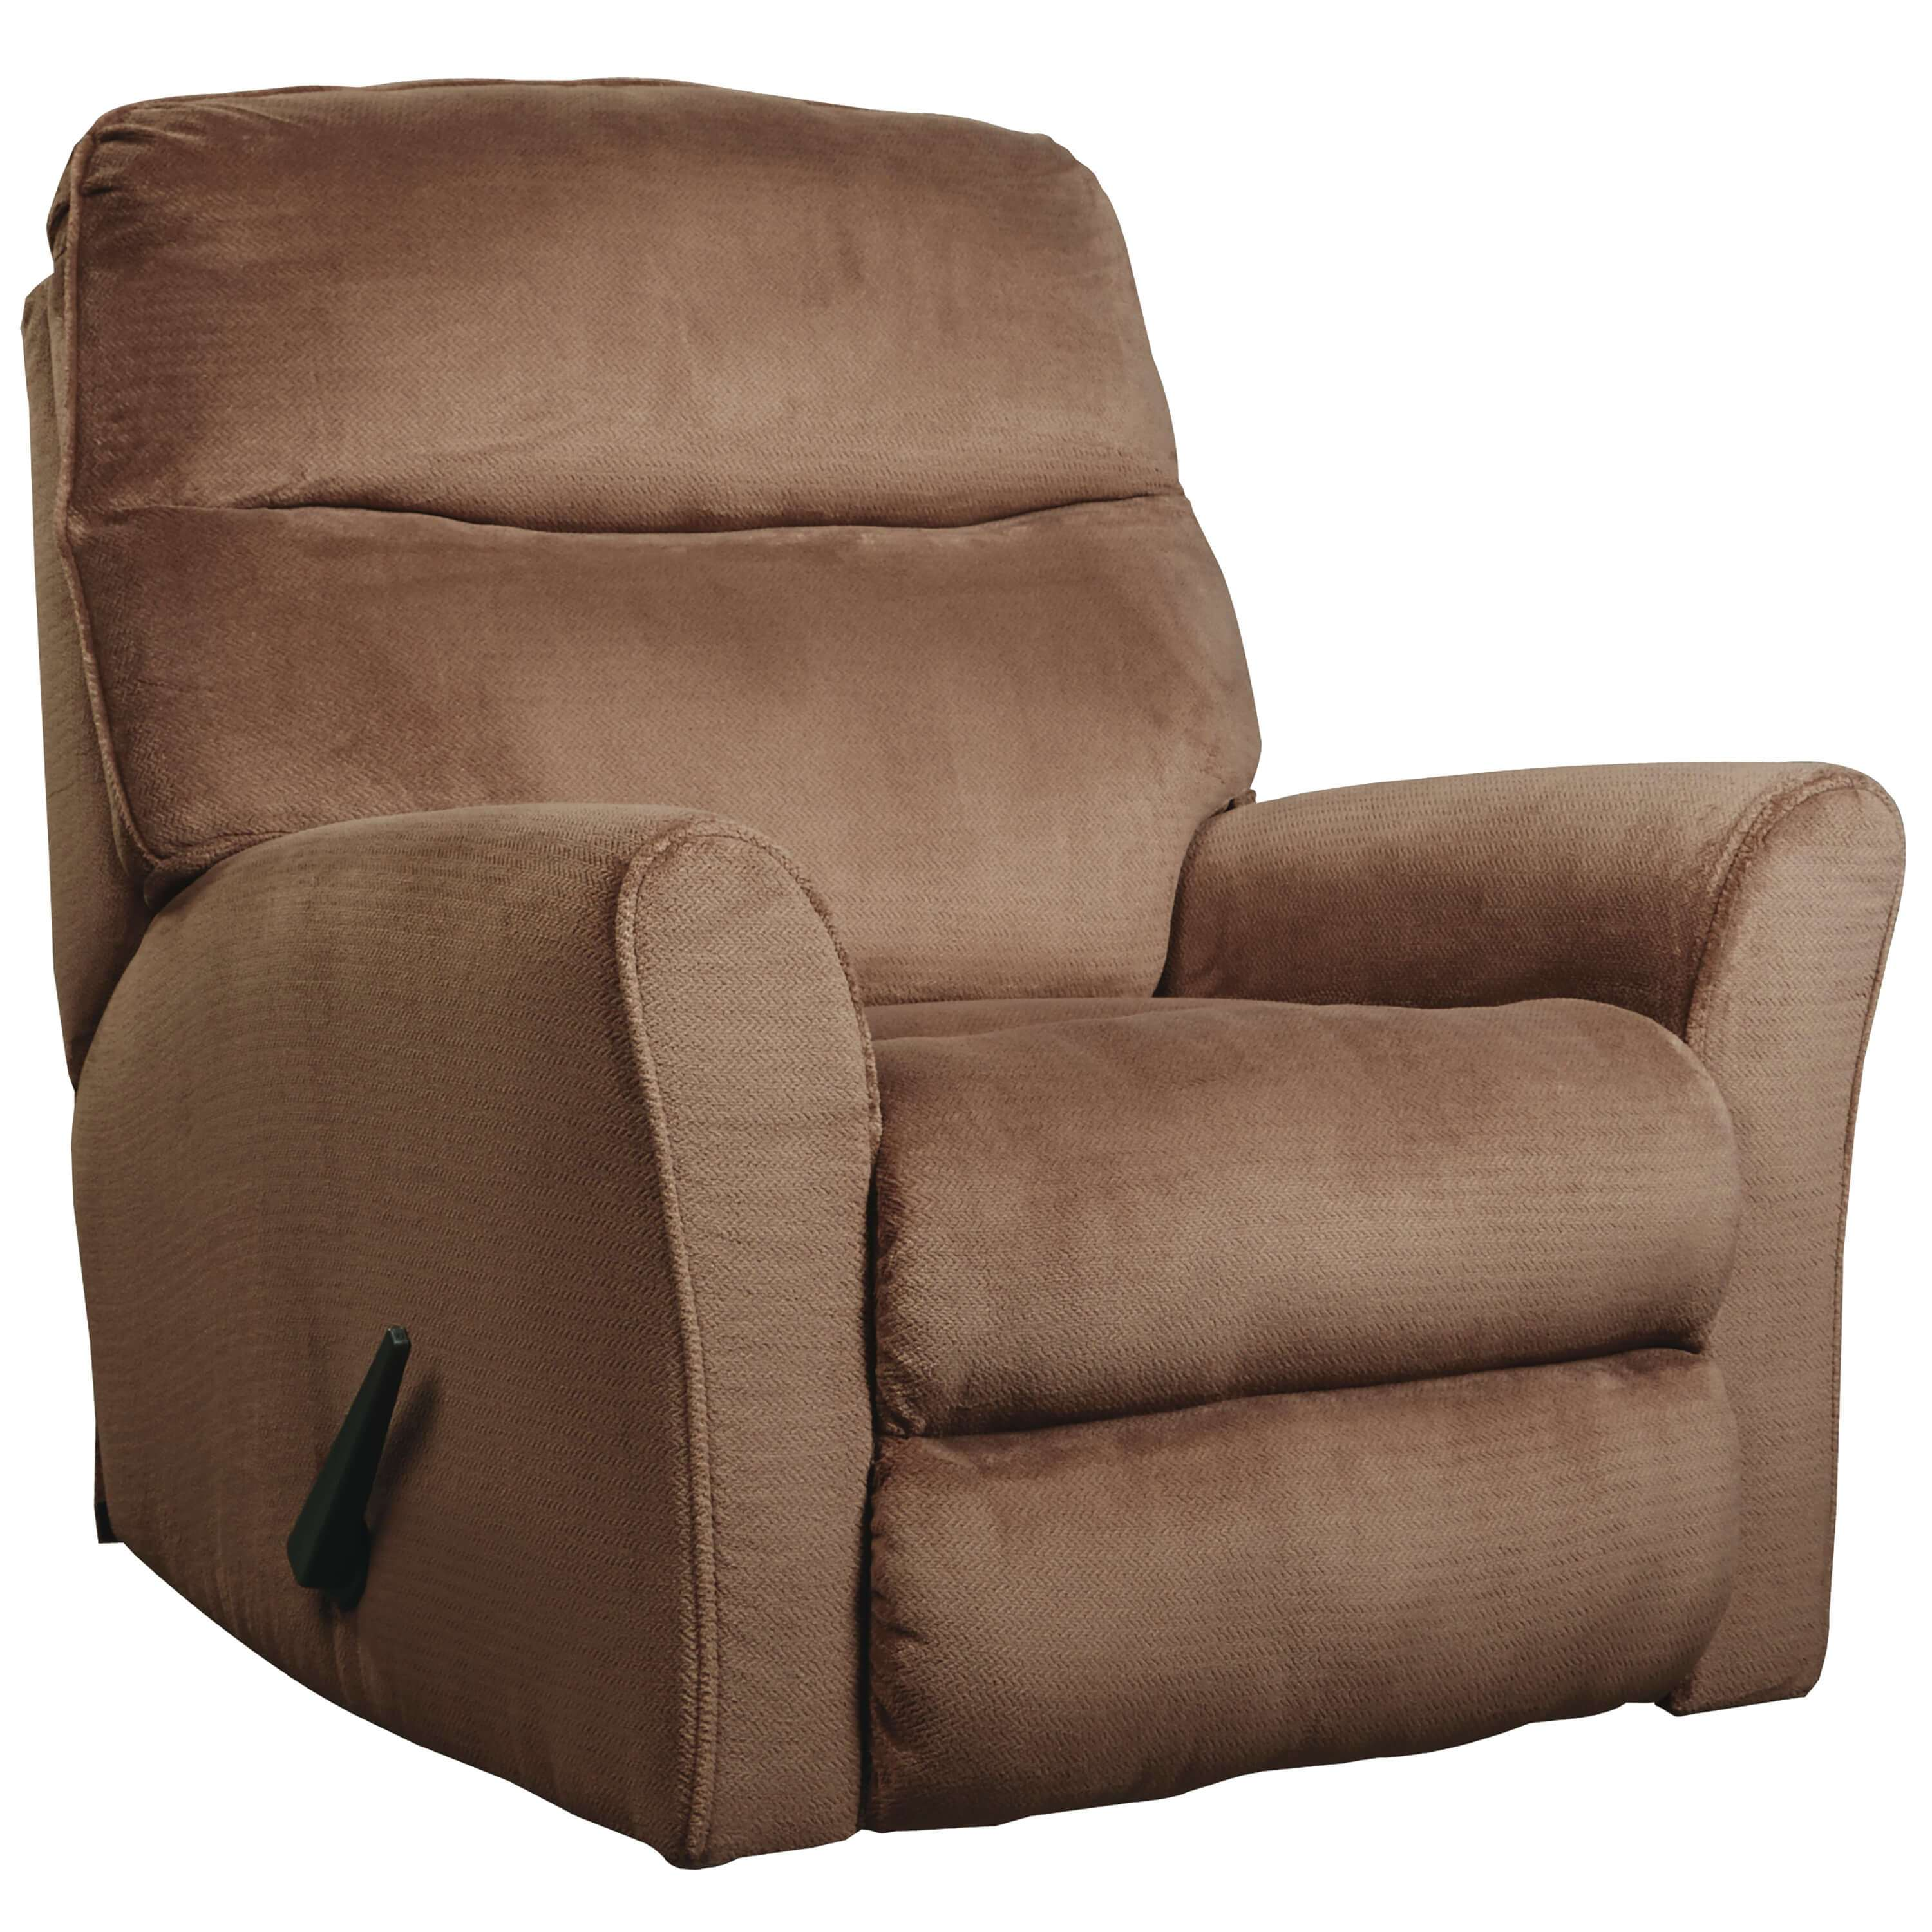 contemporary-recliners-ergonomic-recliner.jpg